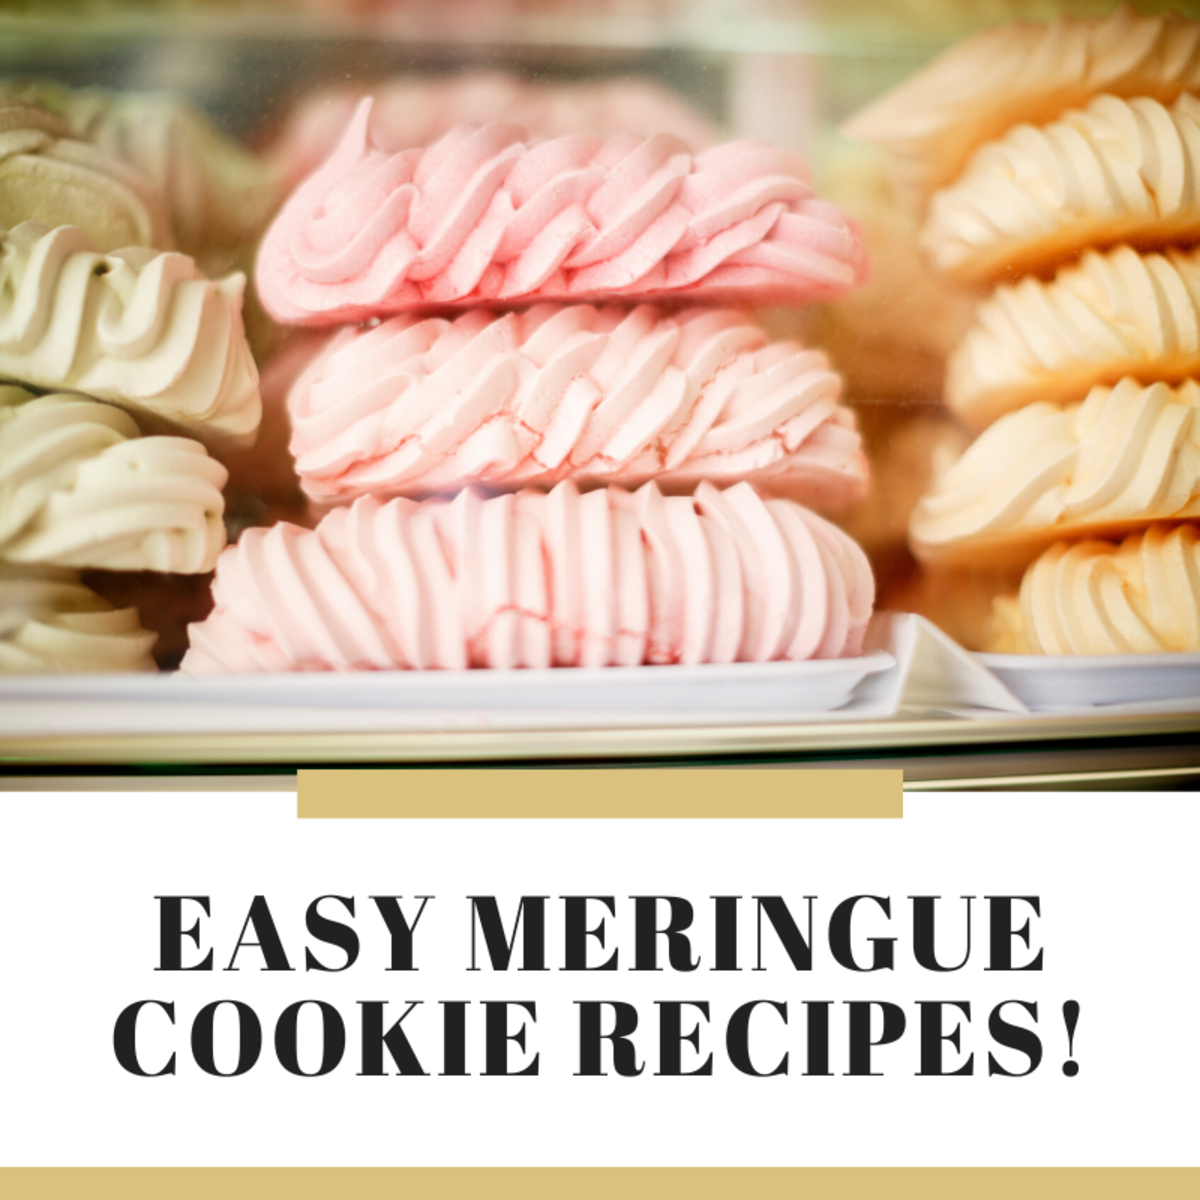 This easy meringue recipe is absolutely fantastic.